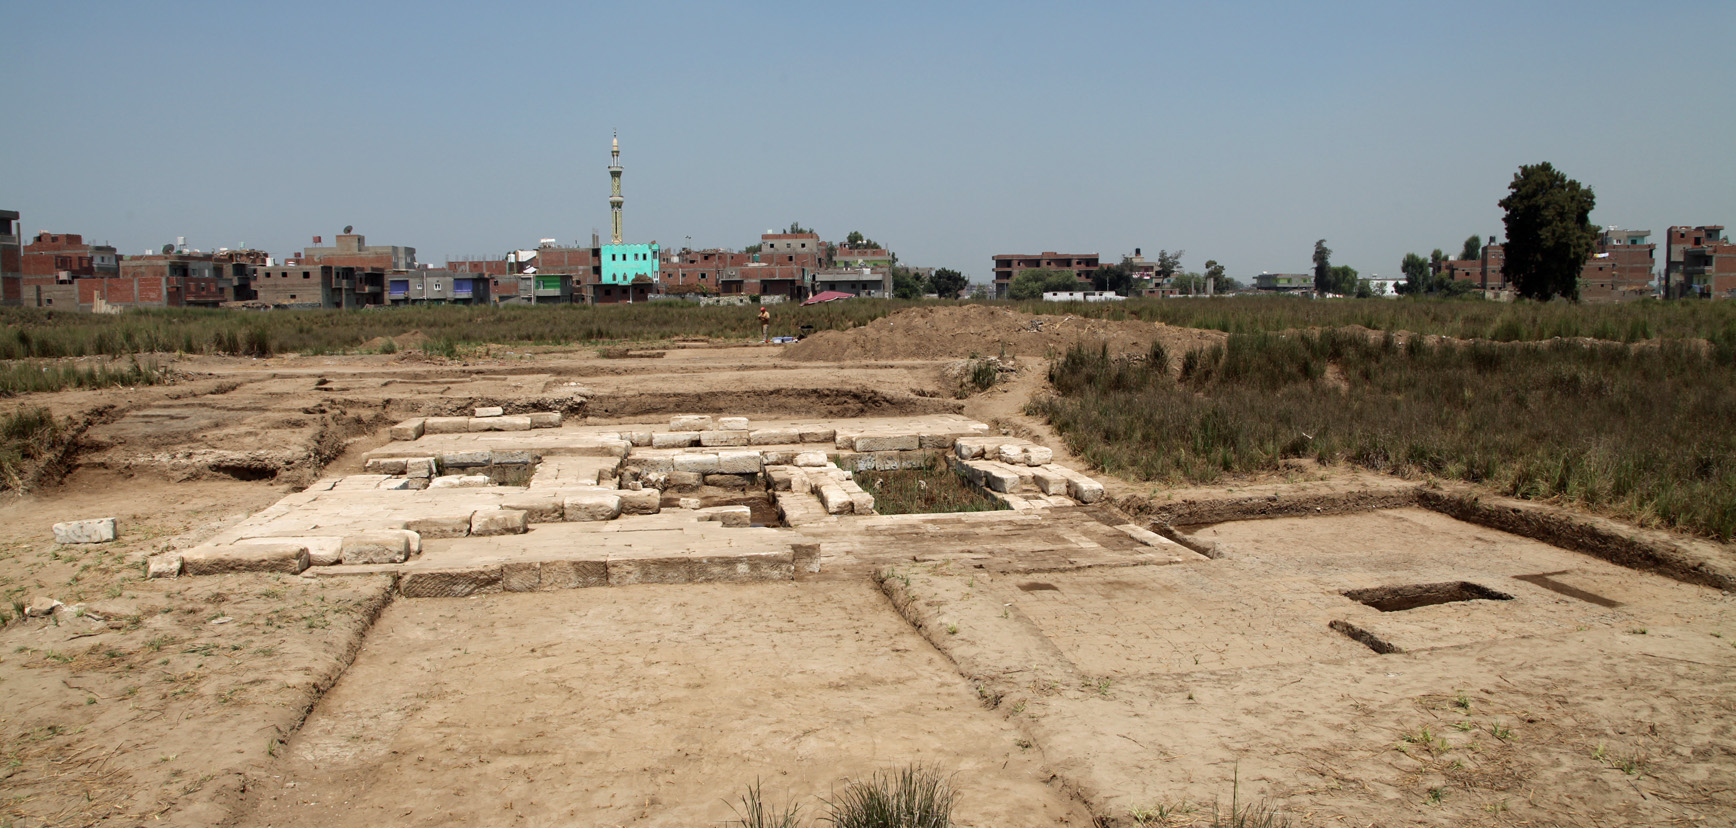 A view across the archaeological remains at Tell Timai